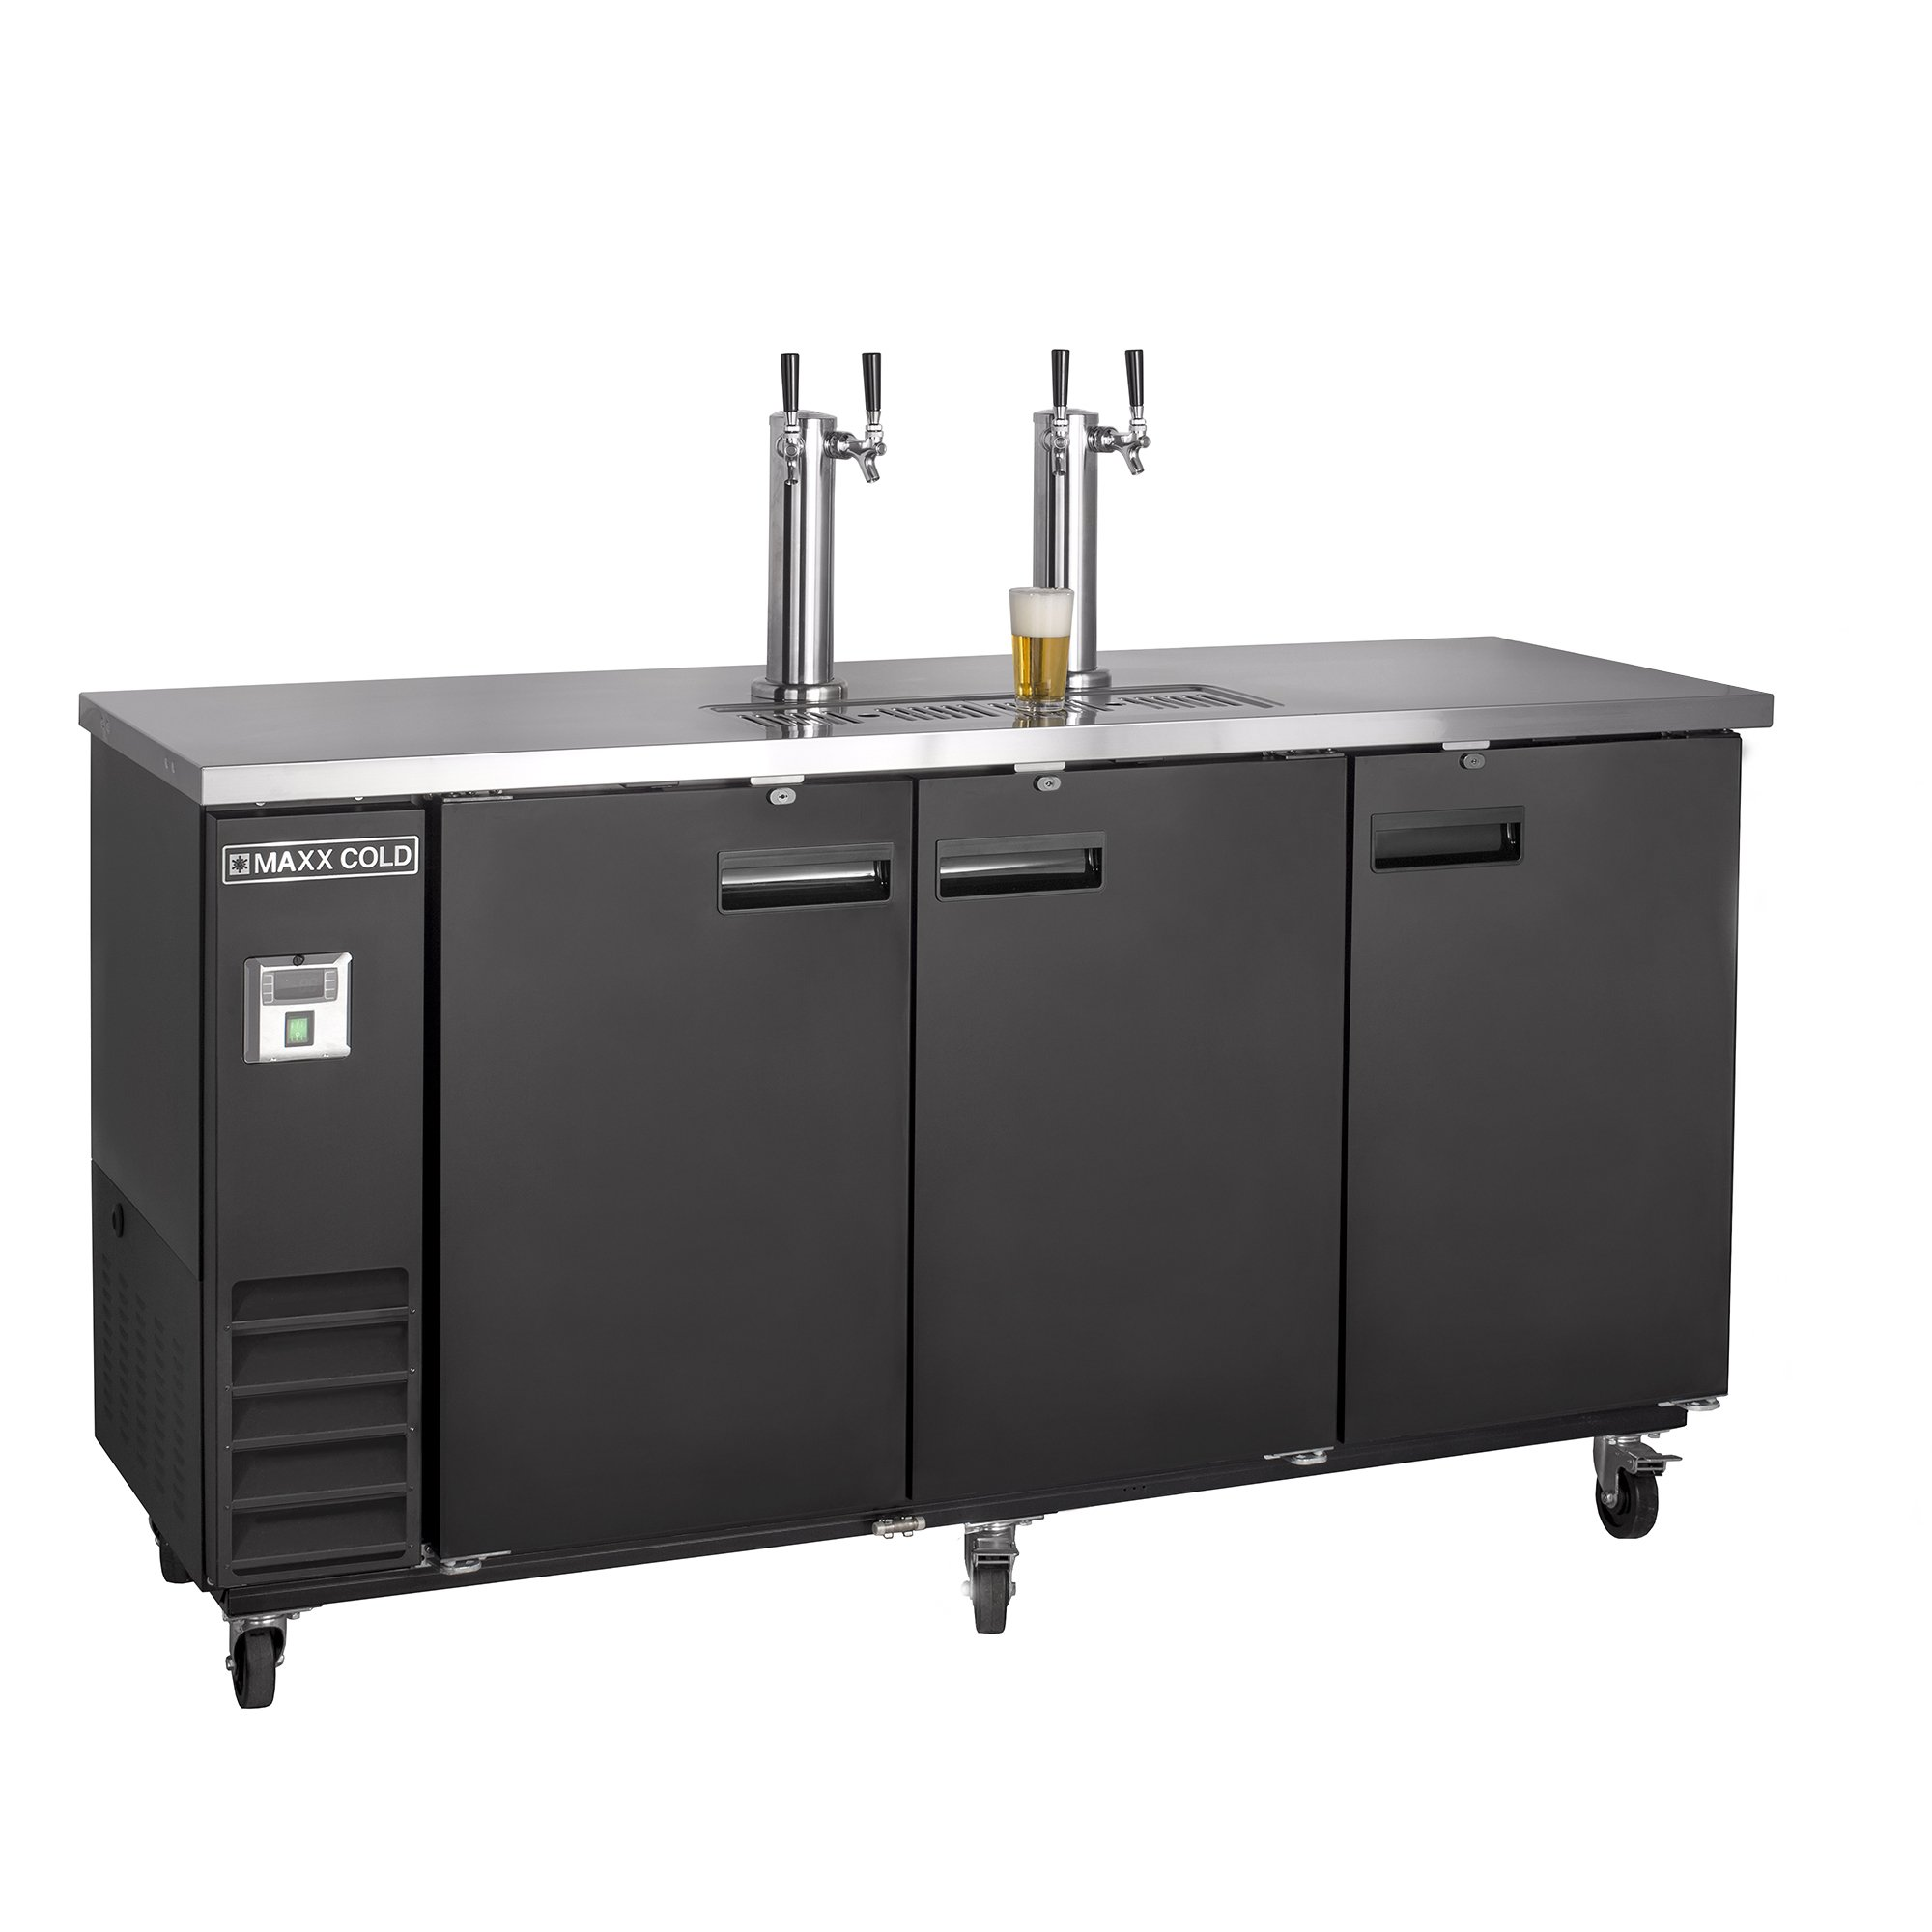 Maxx Cold MXBD72-2B Commercial NSF Bar Direct Draw Kegerator Beer Dispenser Cooler with 2 Towers Taps Holds 3 Half 1/2 Size Kegs, 73.1 Inch Wide 17.3 Cubic Feet , Black